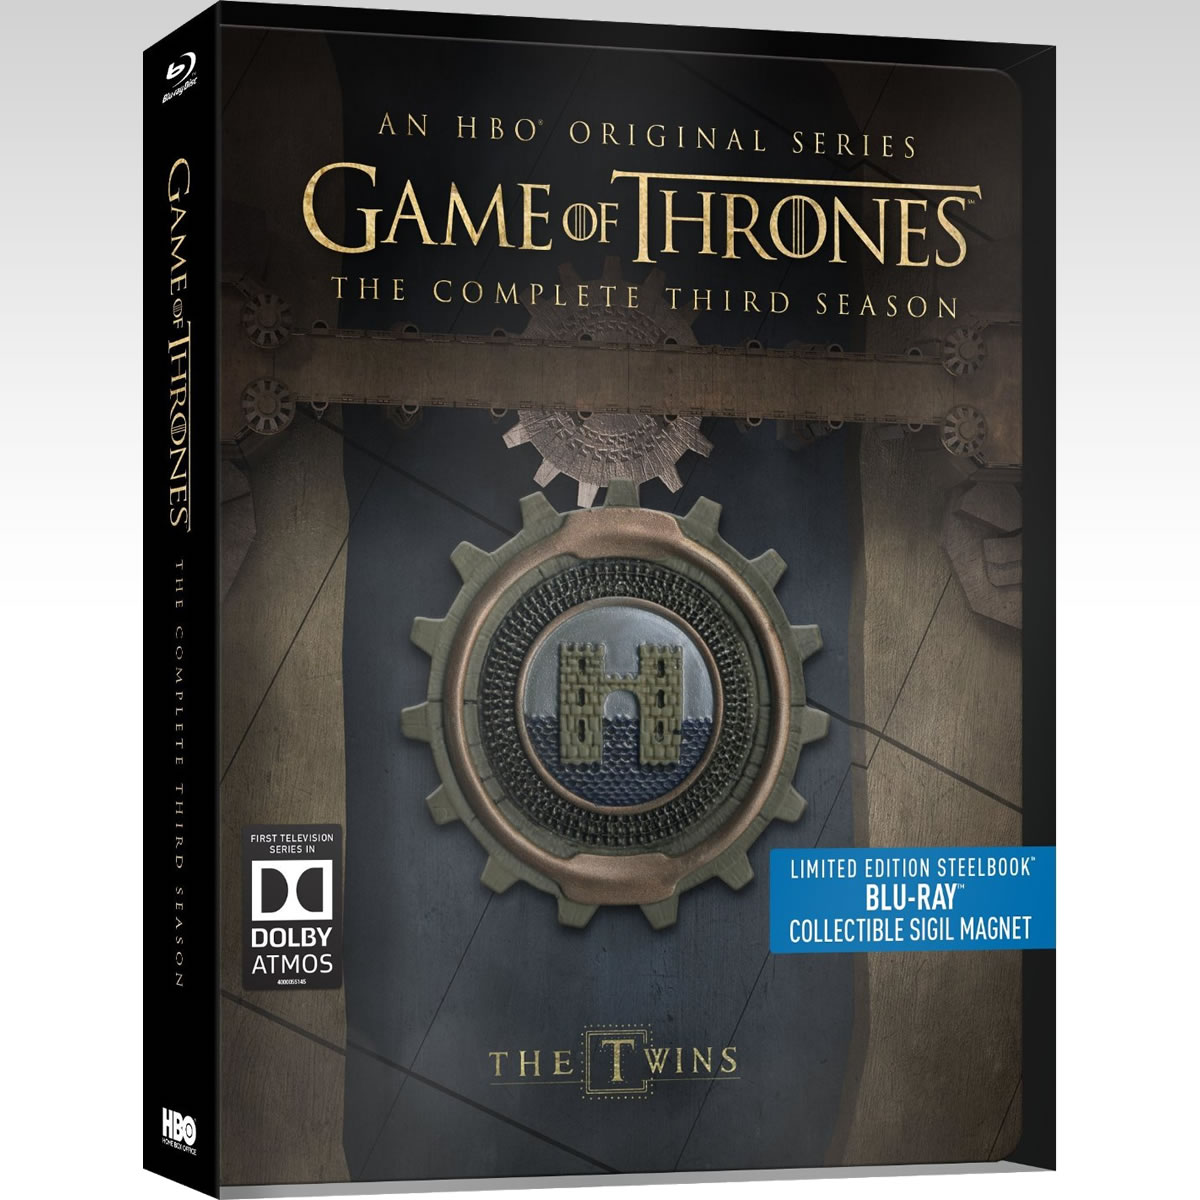 GAME OF THRONES: THE COMPLETE 3nd SEASON - Limited Edition Steelbook [��������� �� ���������� ����������] (BLU-RAY)